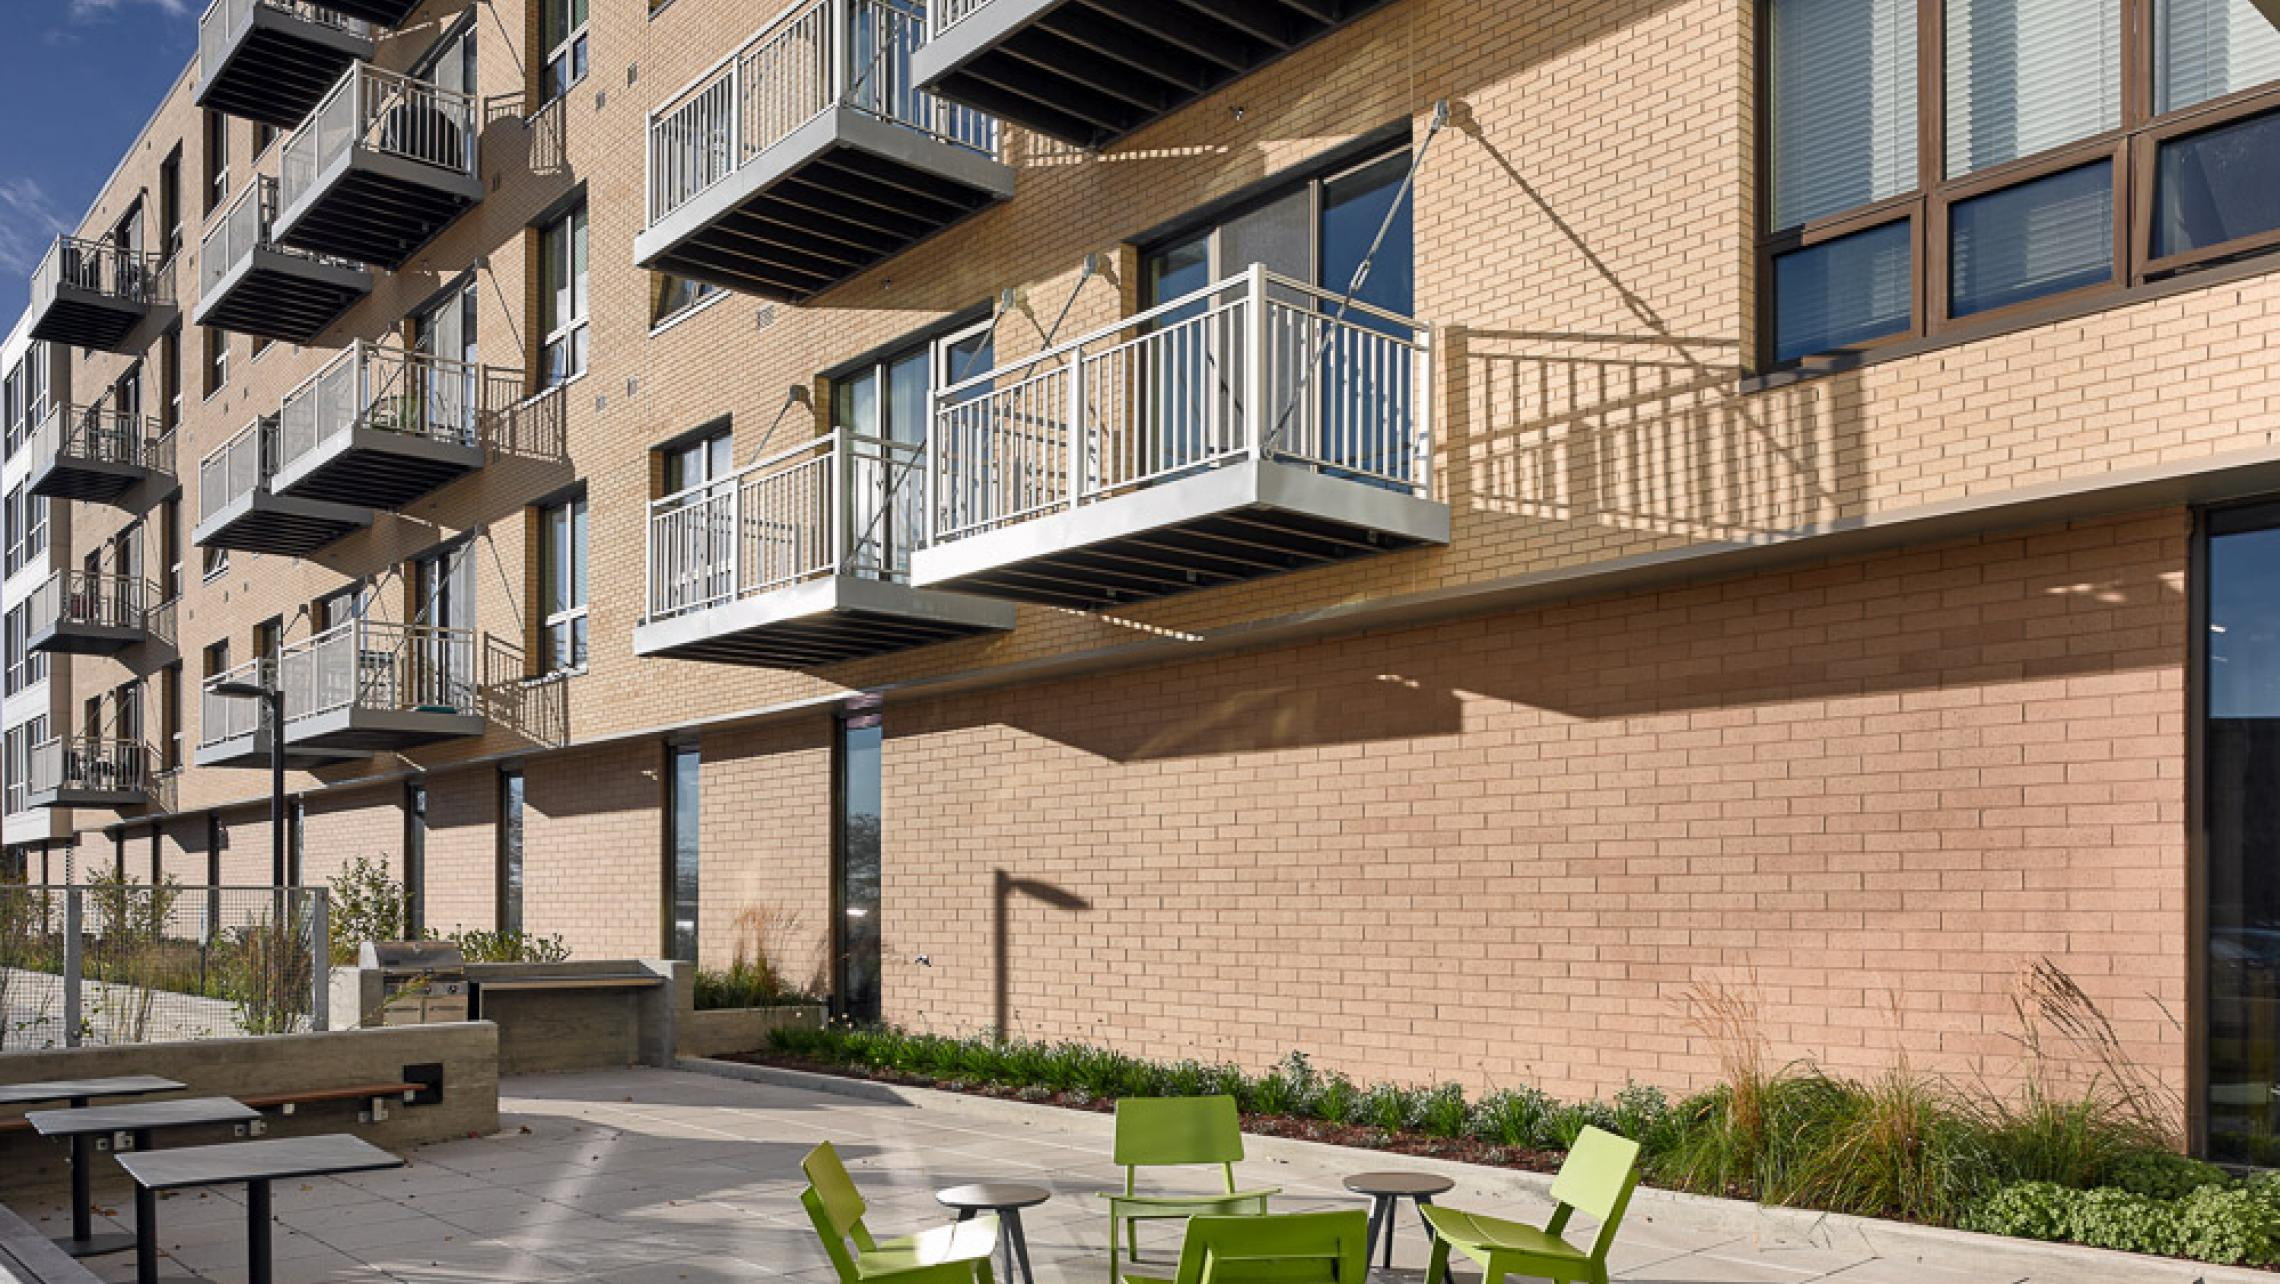 ULI Nine Line Apartments - Grill Patio with Outdoor Seating